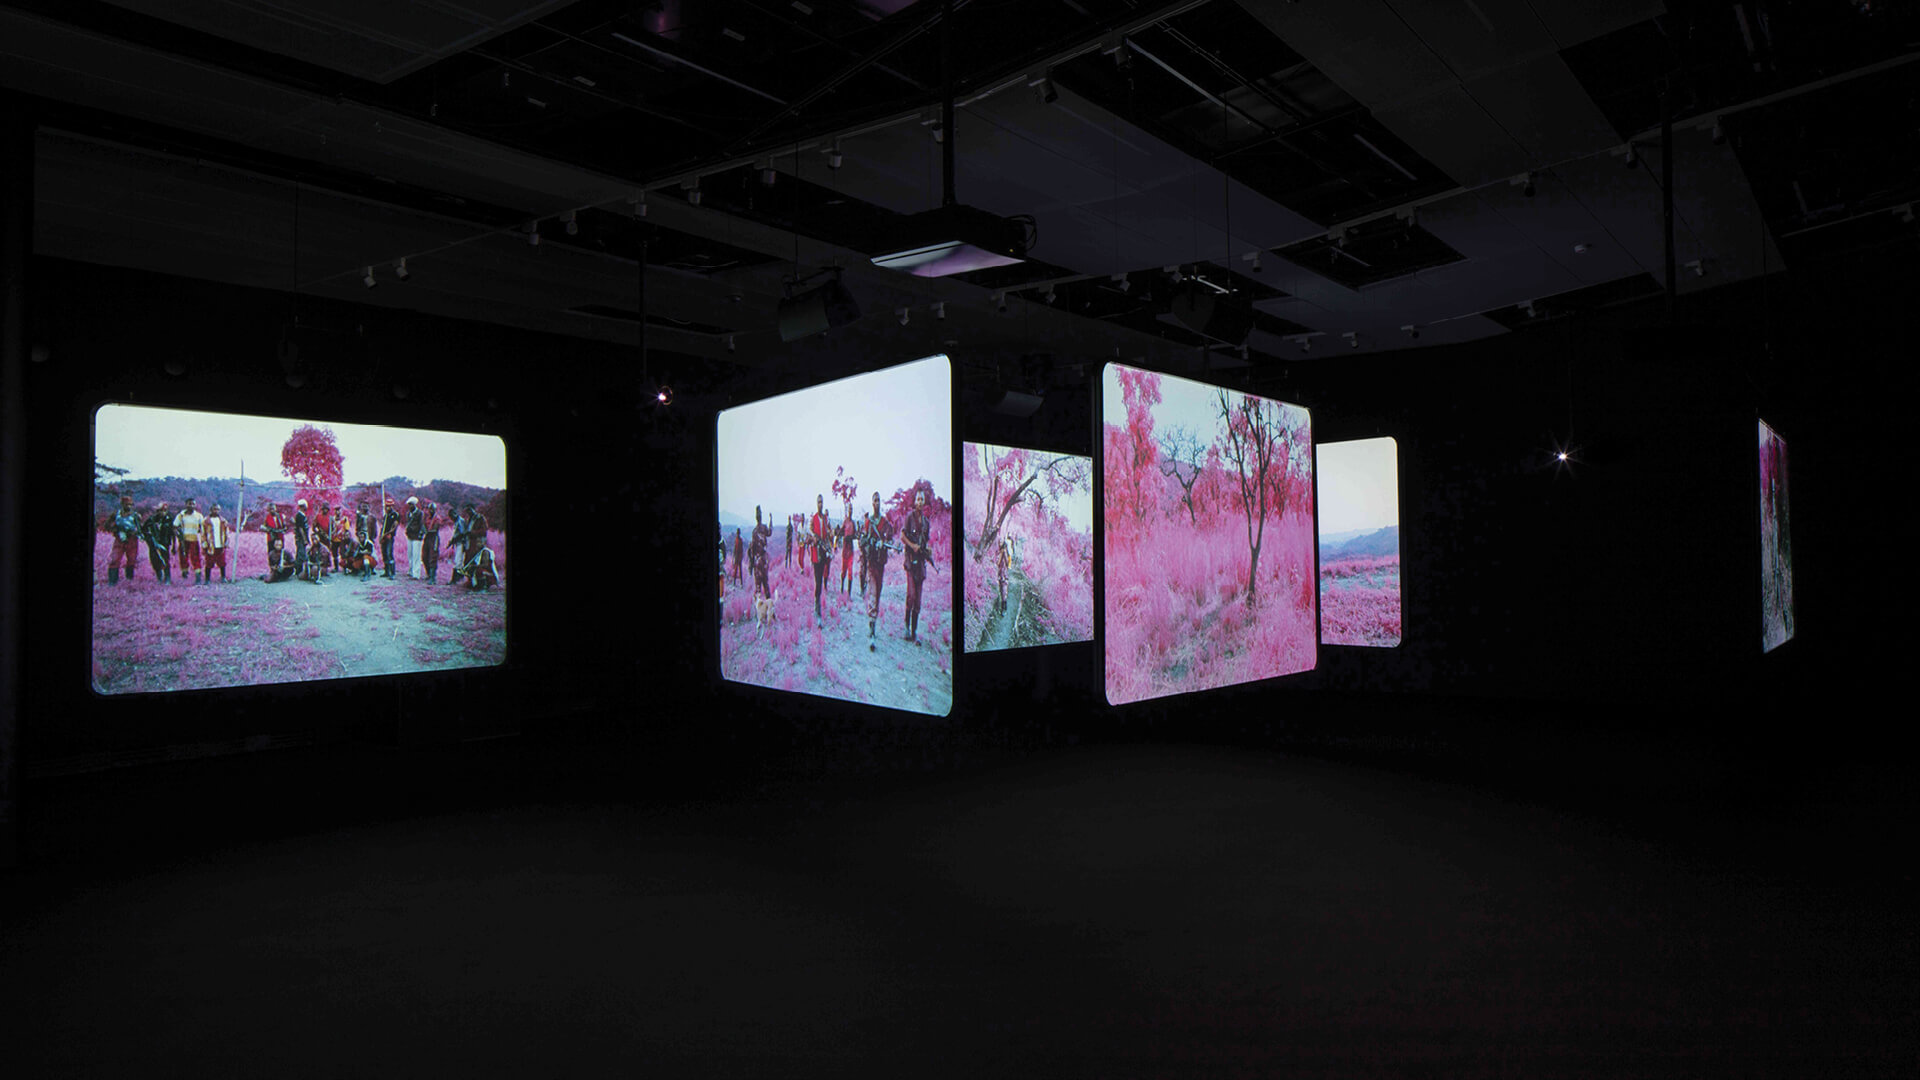 Richard Mosse's 'Displaced' breathes new life into documentary photography